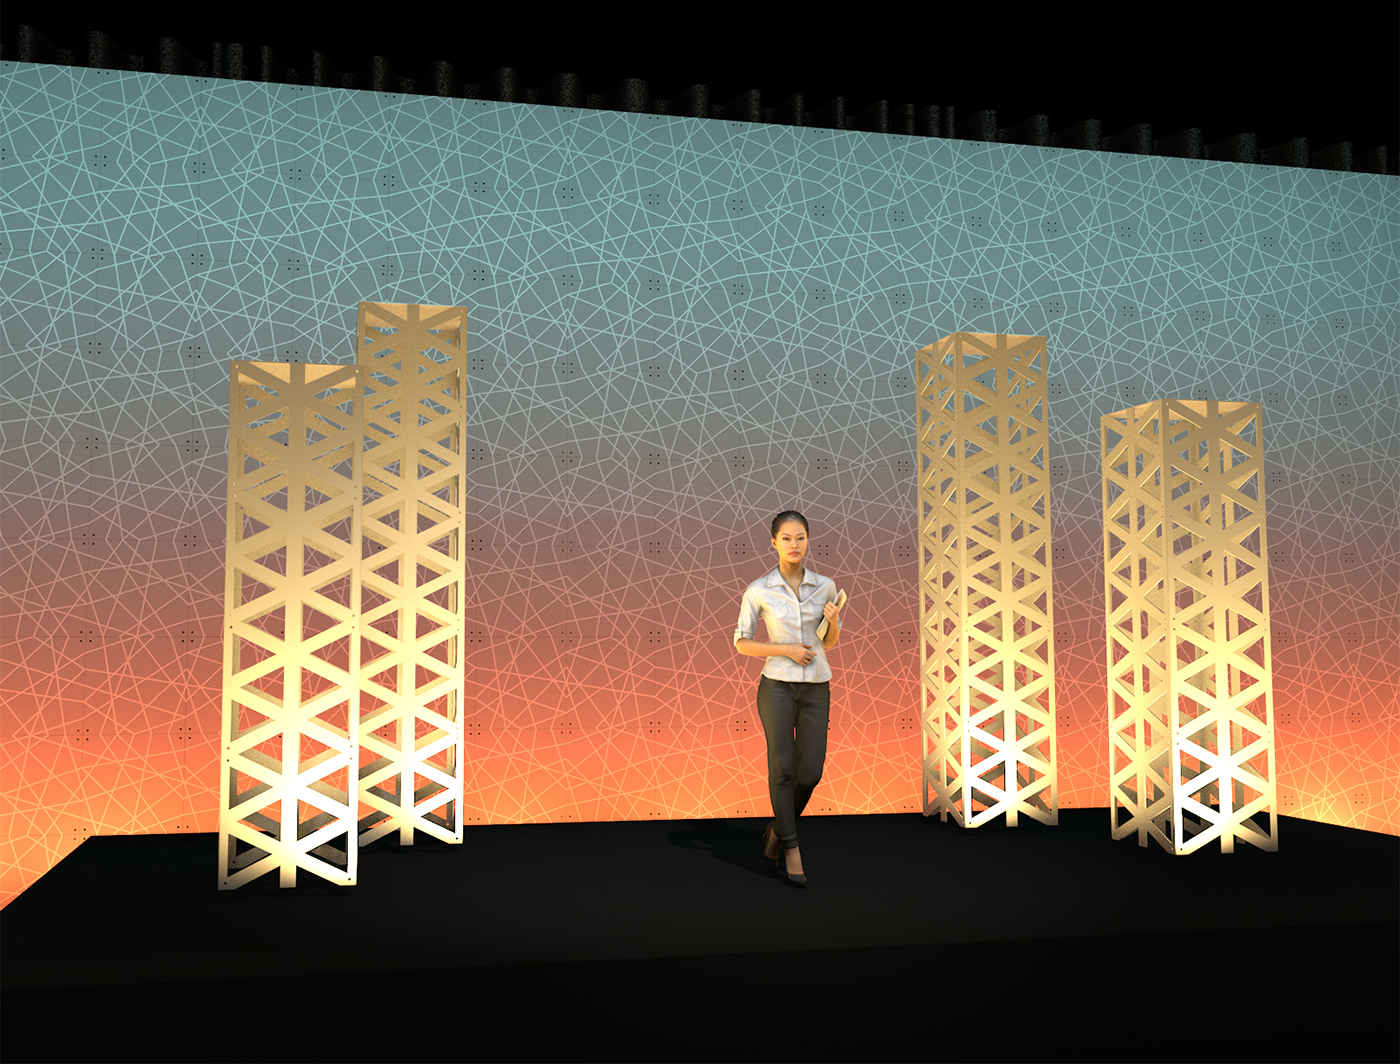 Groove Backdrop Looking Vibrant with Triad SuperColumns